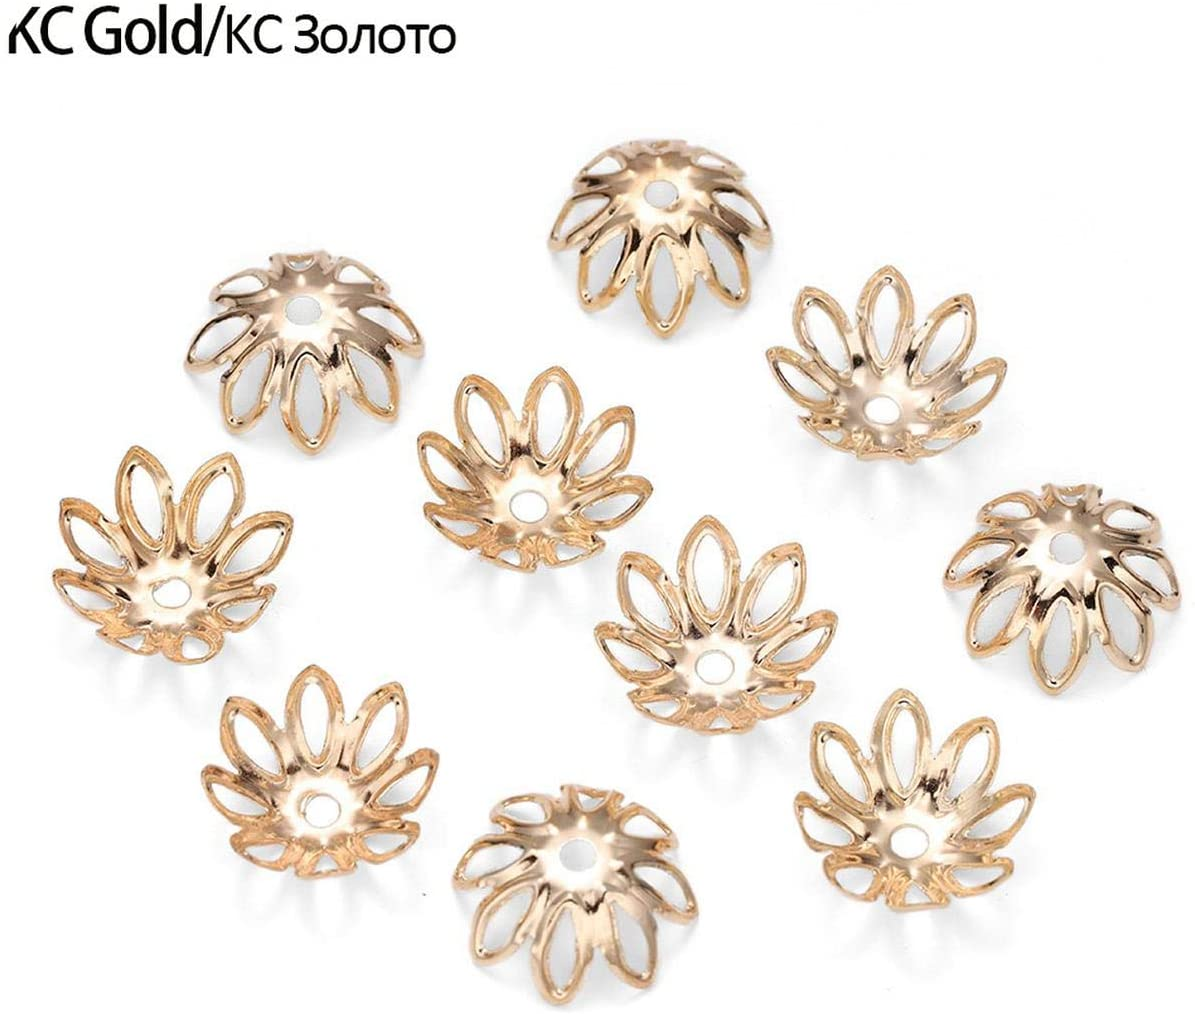 Accessorie 100Pcs/Lot Gold Bronze Plated Filigree Metal Hollow Flower Spacer Beads End Caps for Jewelry Making Charms Necklace-Kc Gold-11Mm X 100Pcs